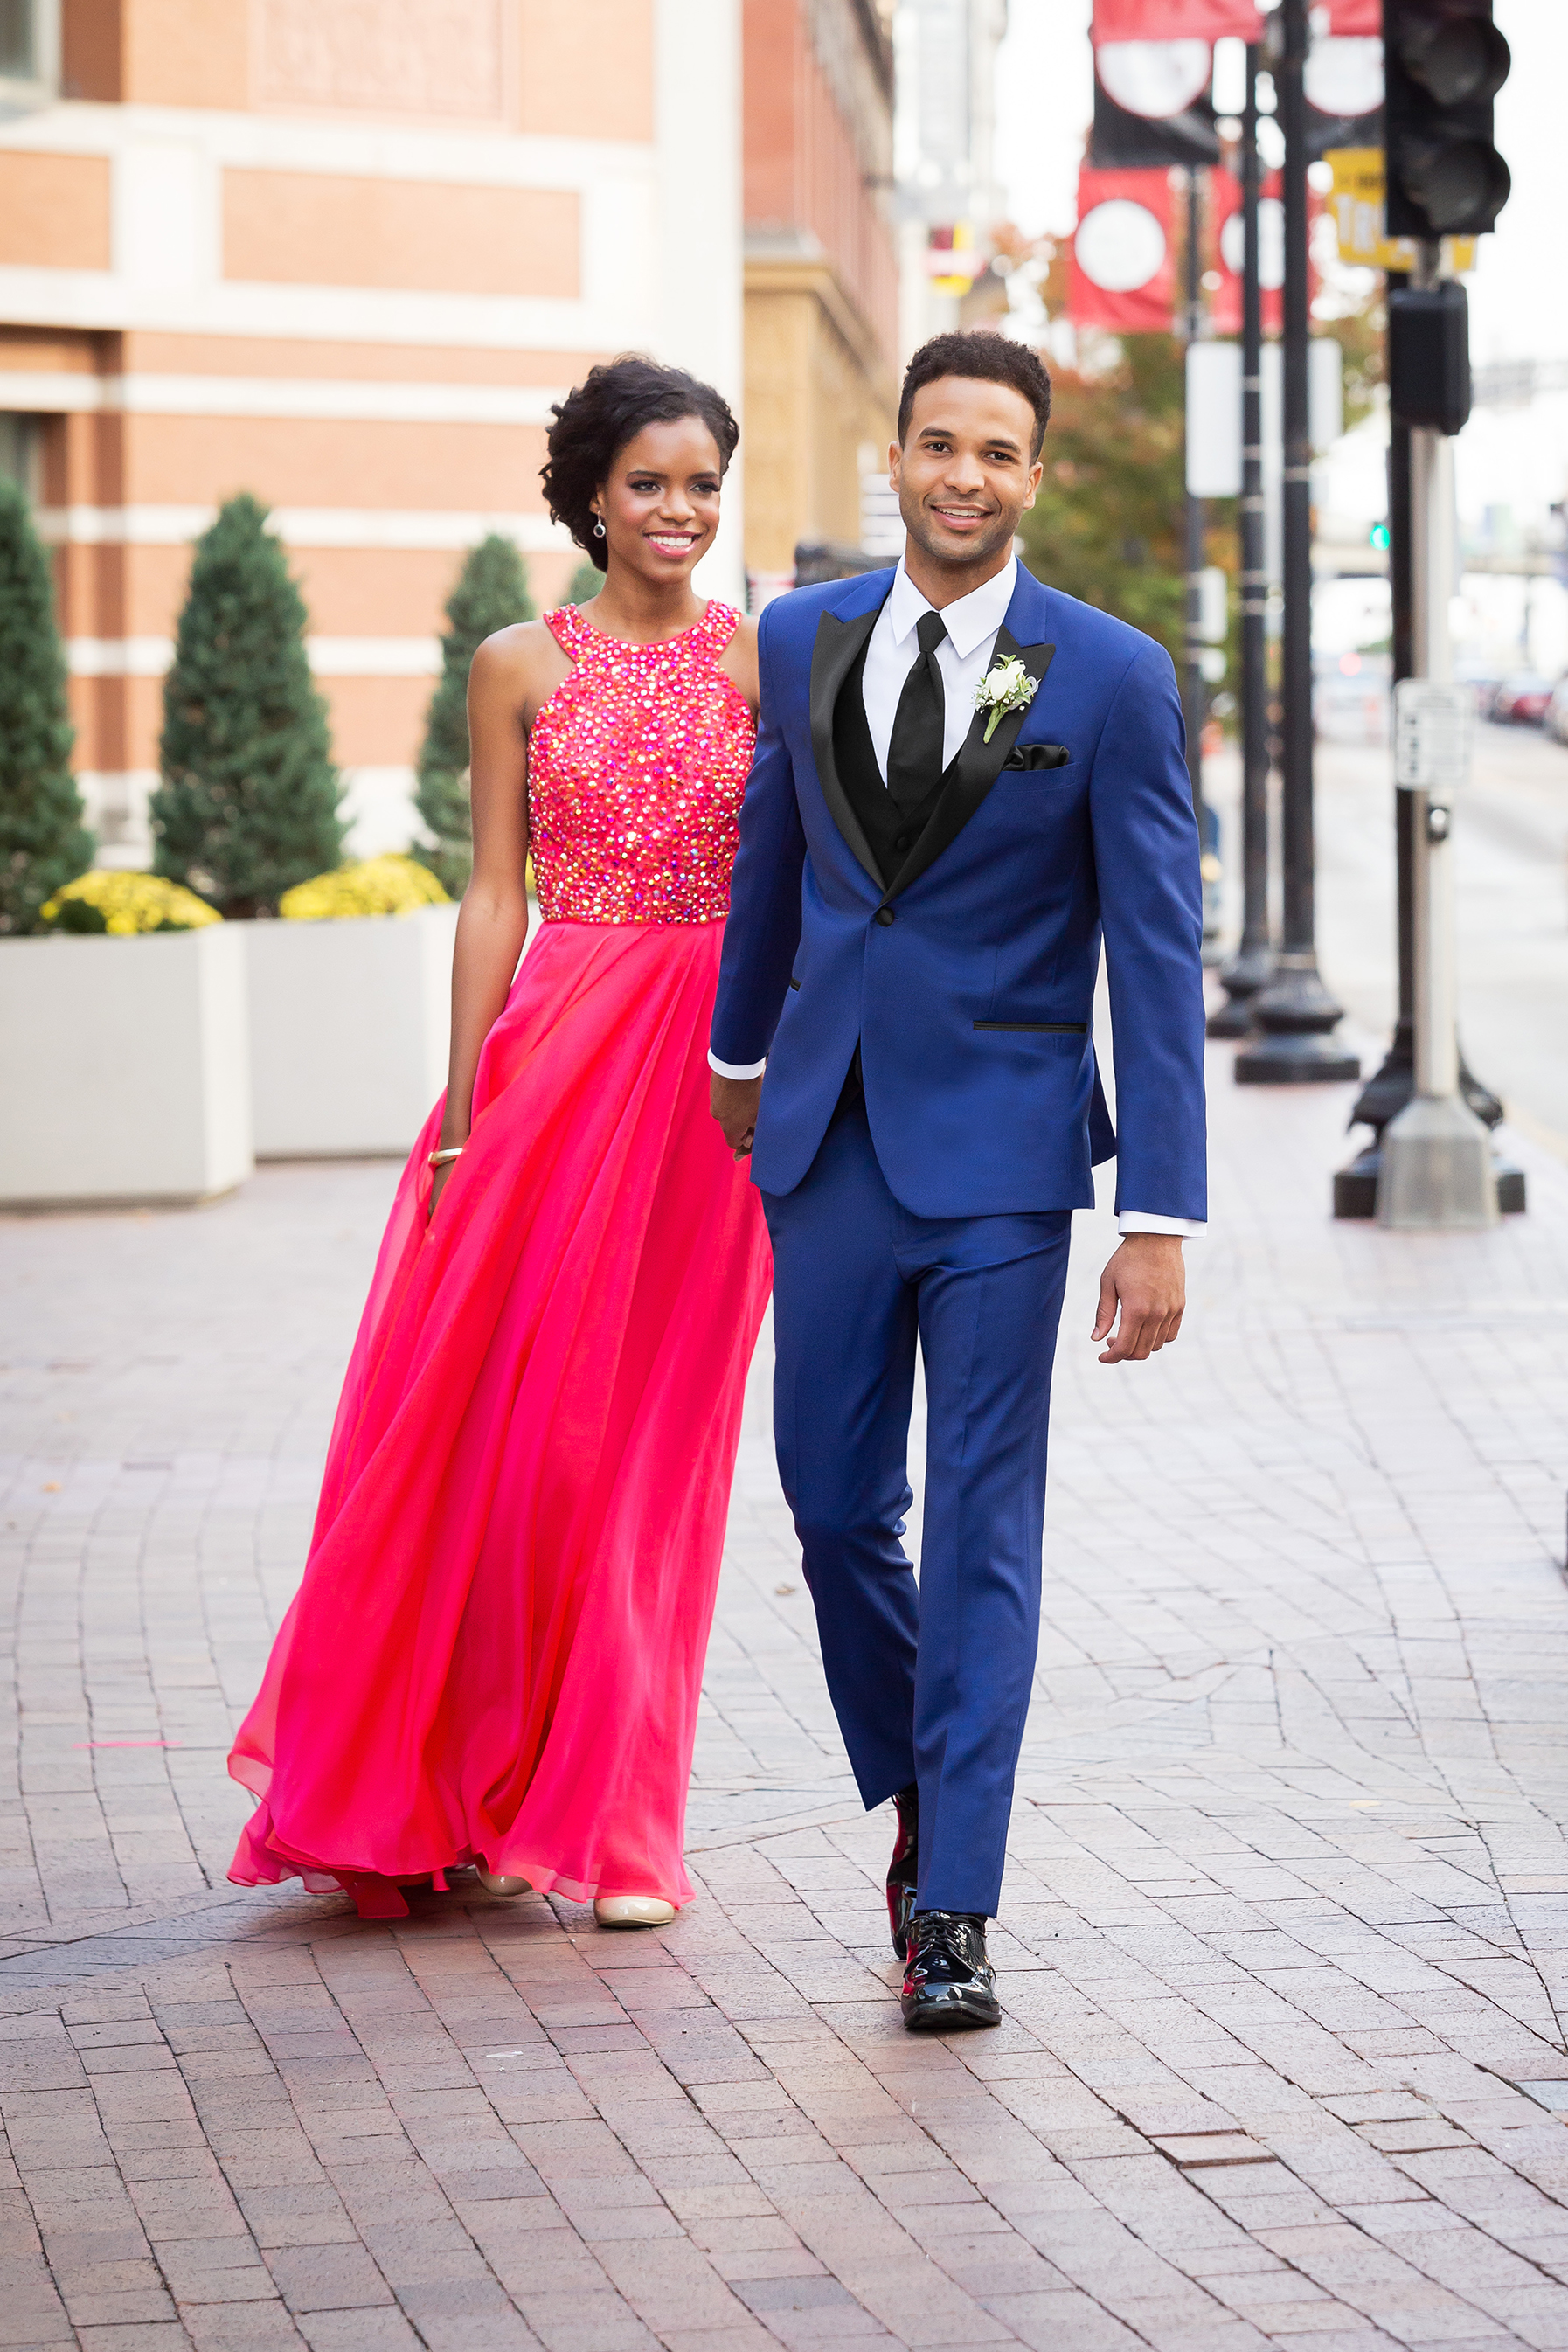 Tuxedos by American Male - While you shop, your date can visit us in the same building to select their matching outfit! We have tuxedos available to rent or to purchase in a variety of styles and colors.In fact, if you purchase your dress from The Prom Shoppe, you will receive a color match code and chance to win discounts for the Tux!